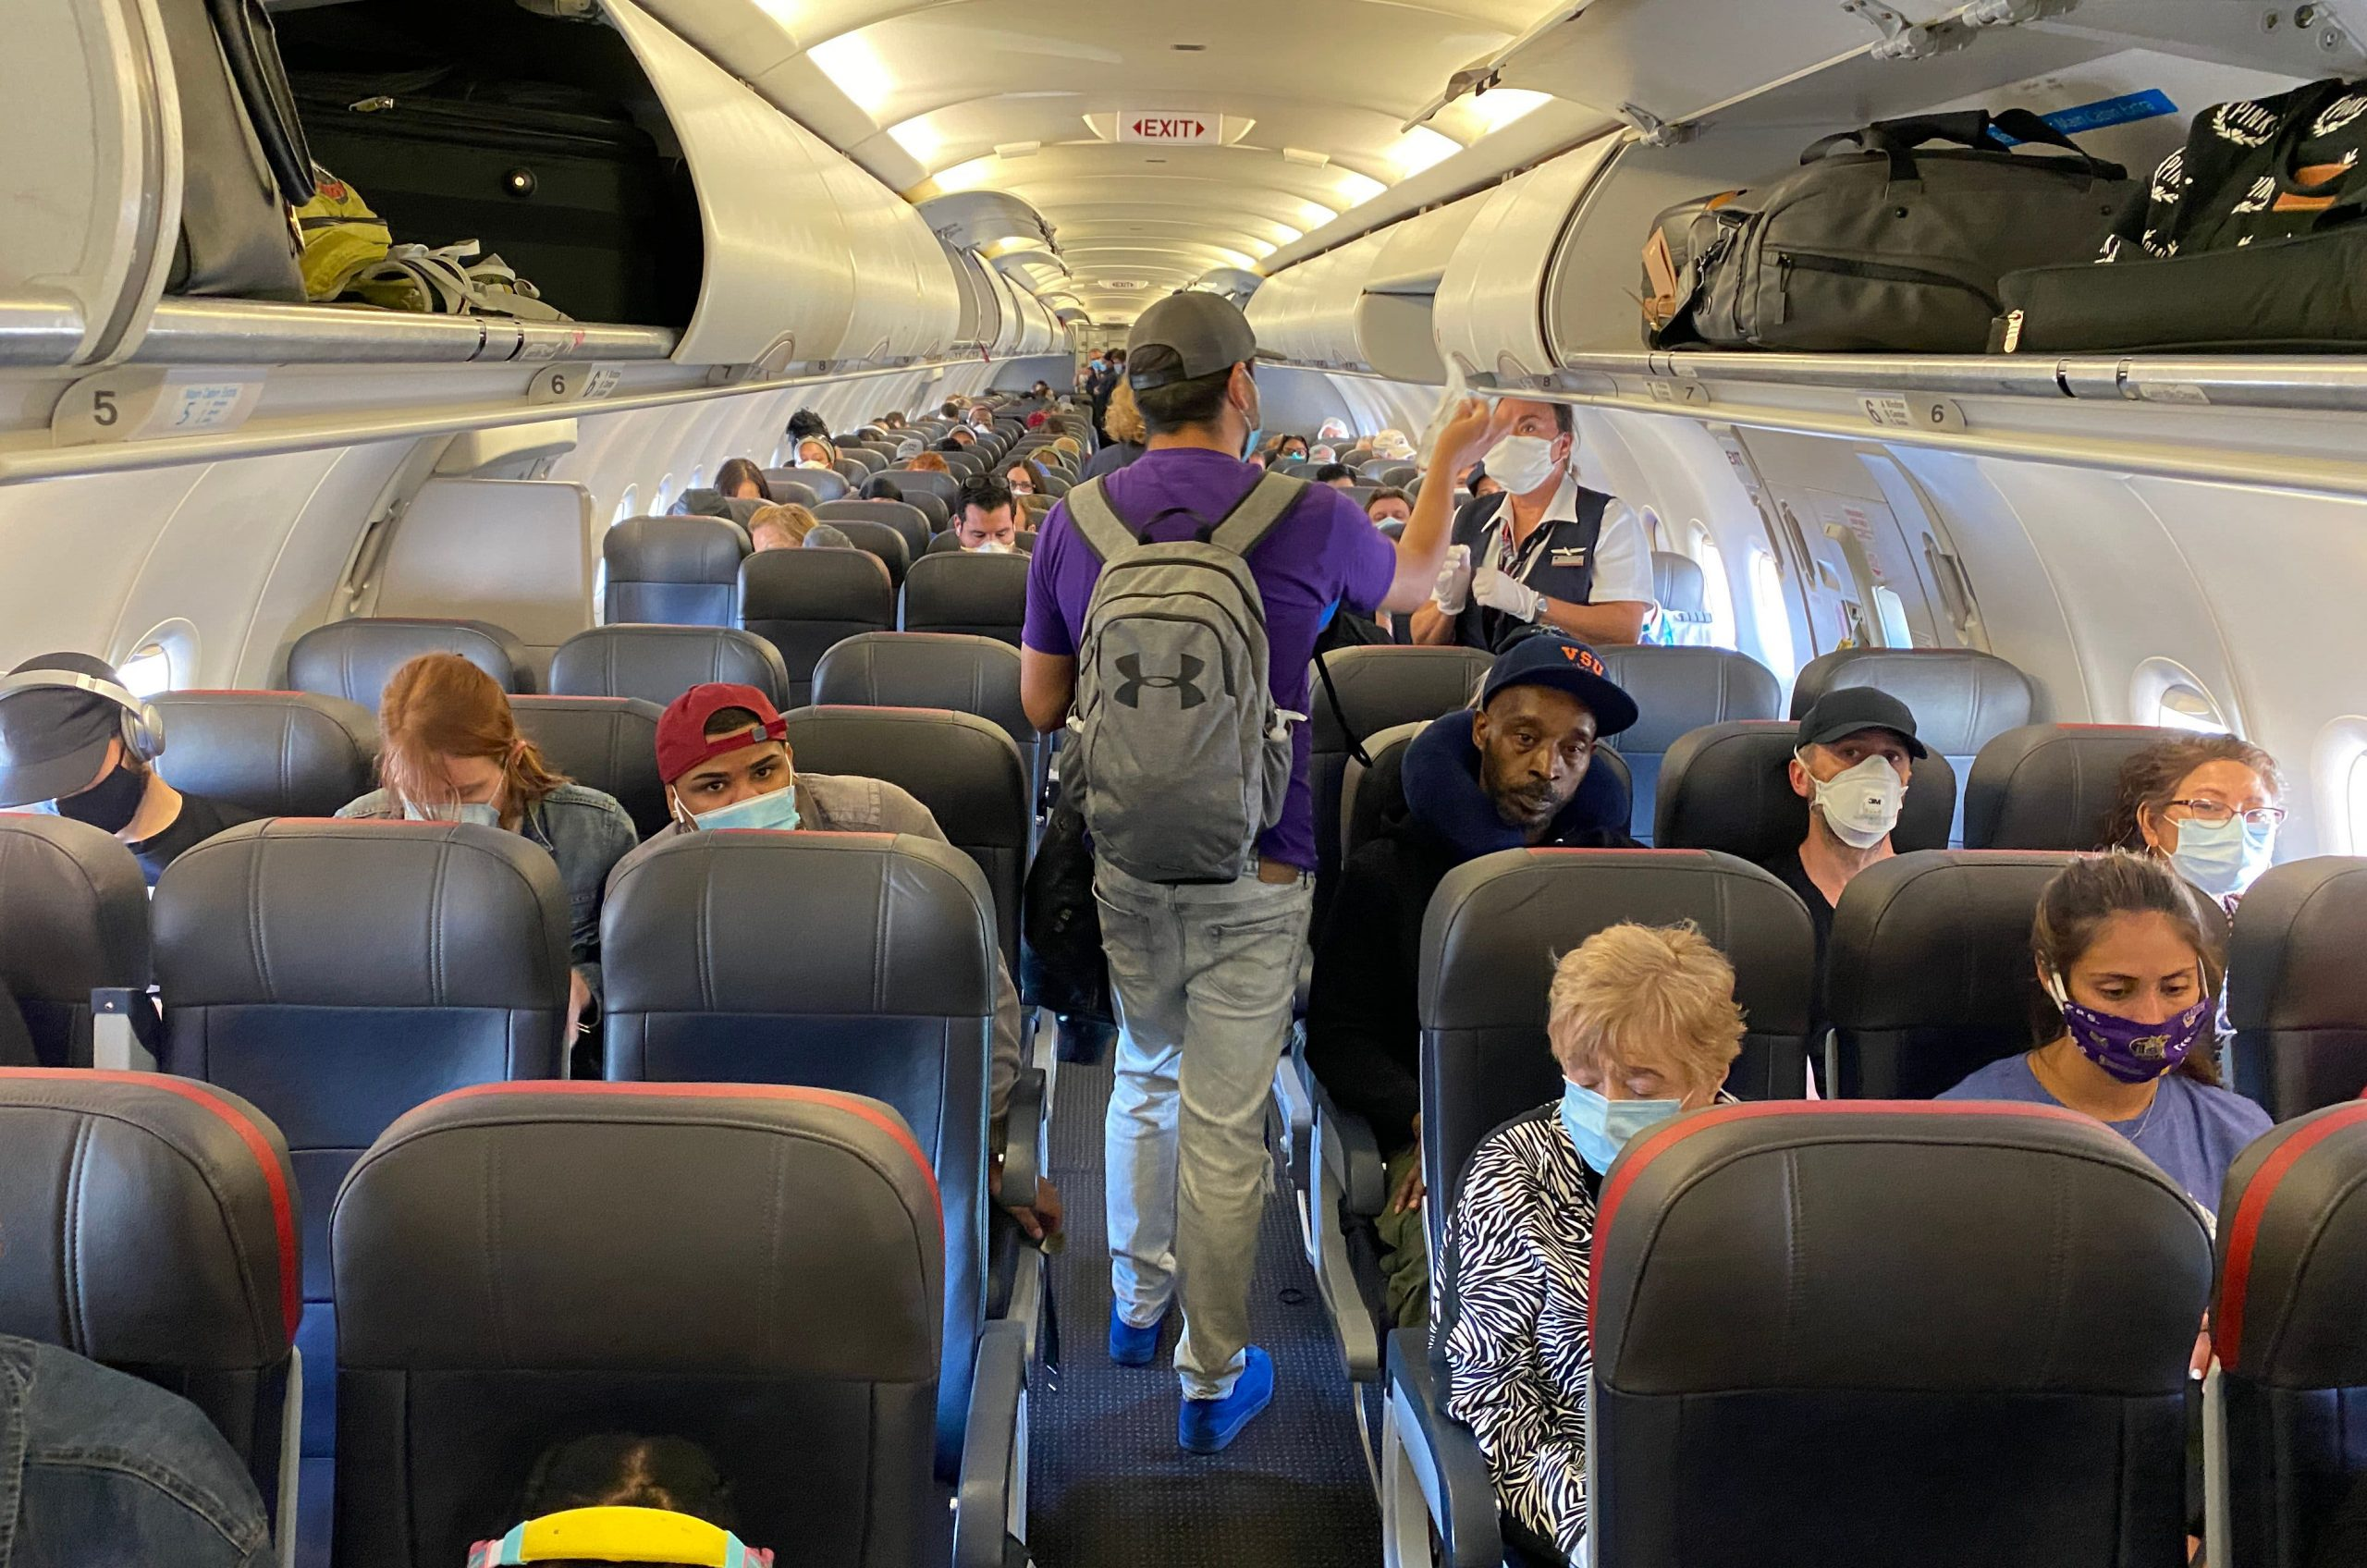 Biden indicators order requiring vacationers put on masks on planes and at airports as pandemic rages